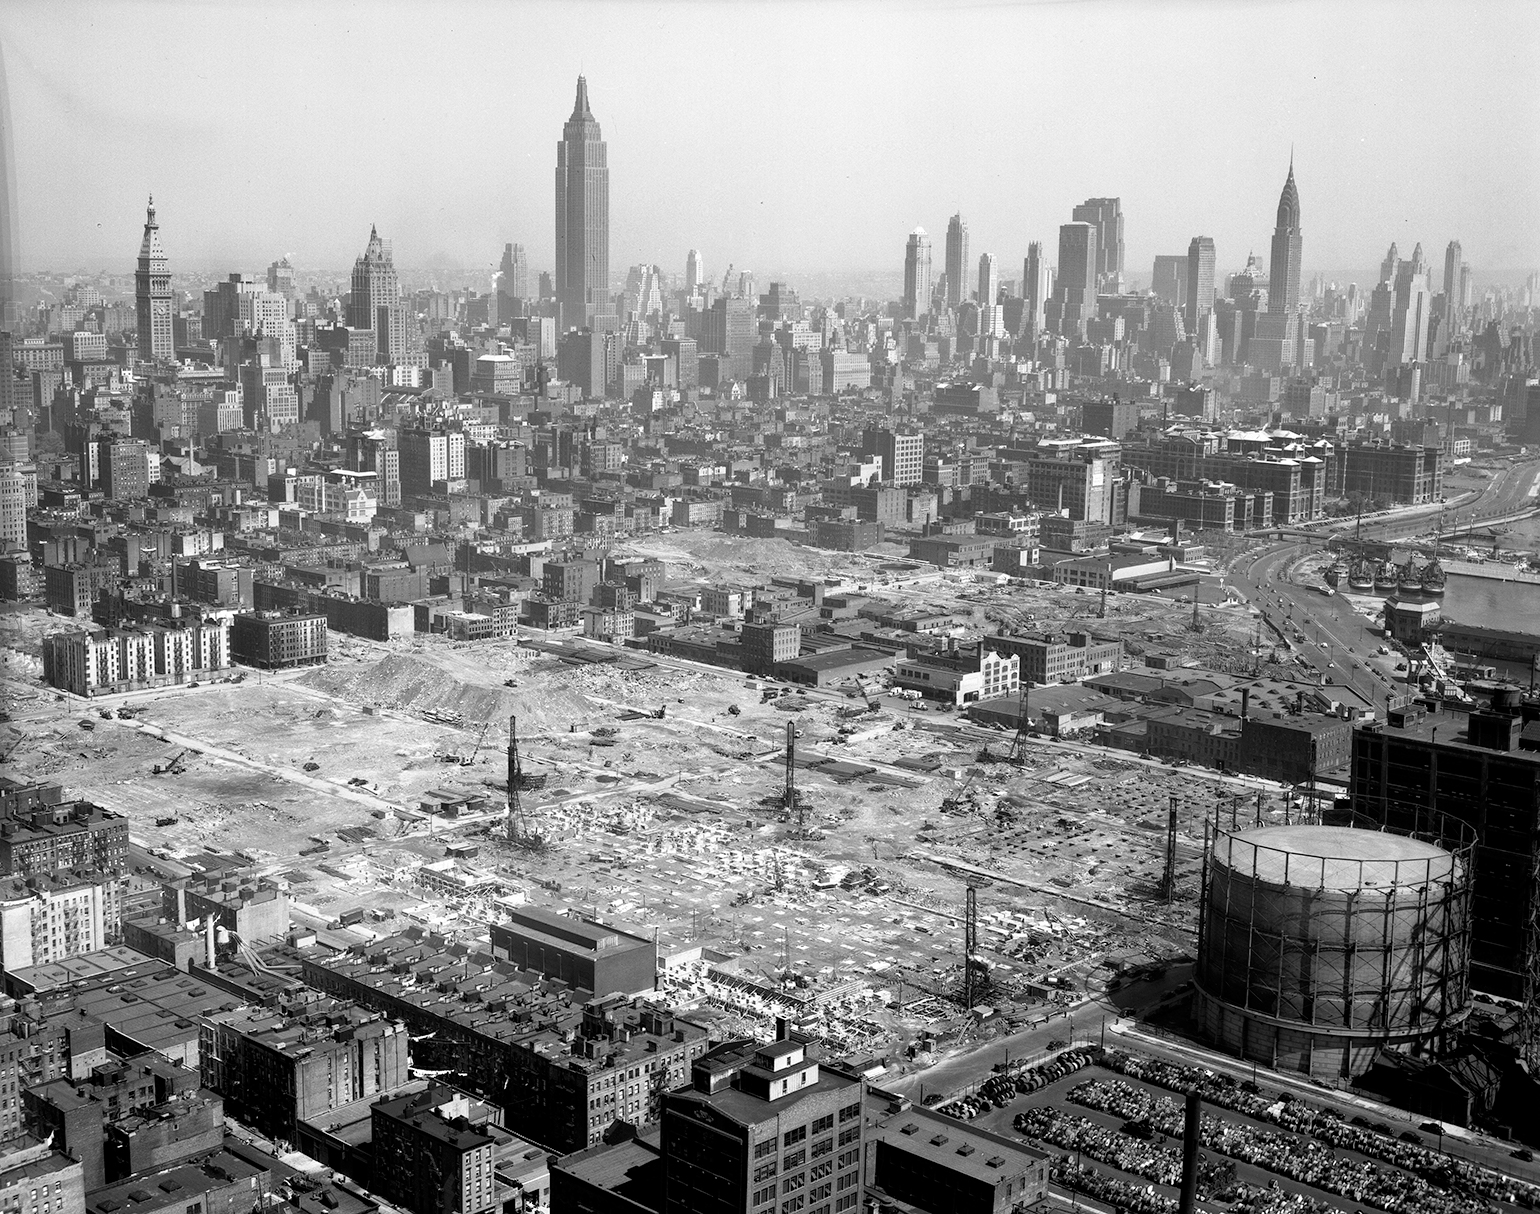 """Stuyvesant Town, in its earliest days of construction, 1946, with intact gas holder and other infrastructure clearly visible. Photograph via the <a target=""""_blank"""" rel=""""noopener noreferrer"""" href=""""https://digitalcollections.archives.nysed.gov/index.php/Detail/objects/25852"""">New York State Archives</a>"""